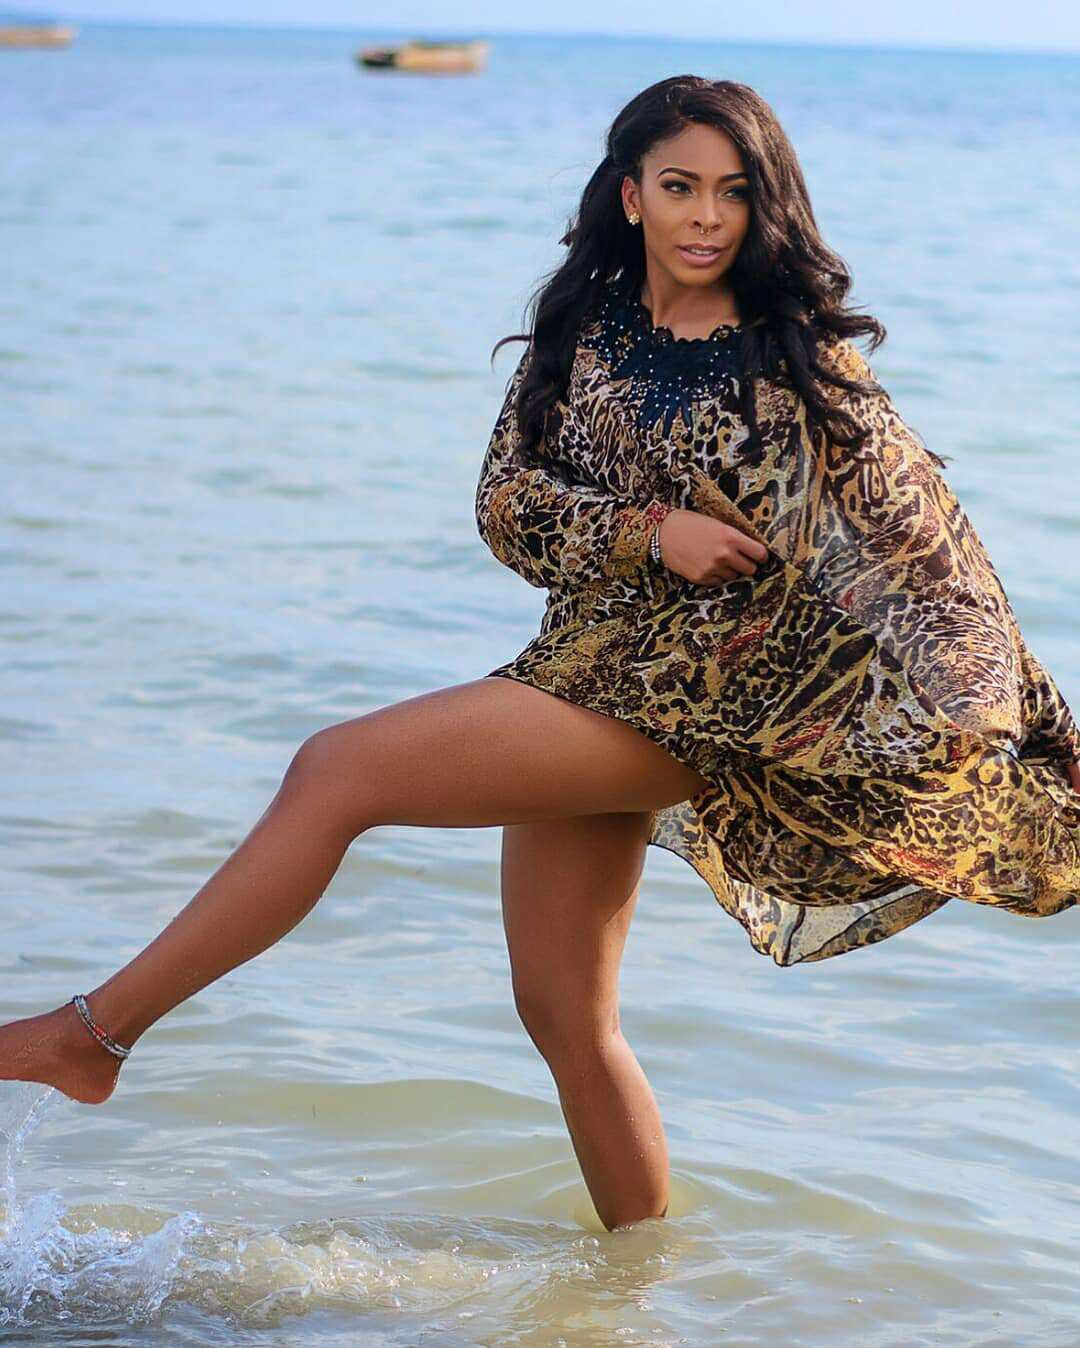 T Boss Puts Her Attractive Body On Display In New Beach Photos